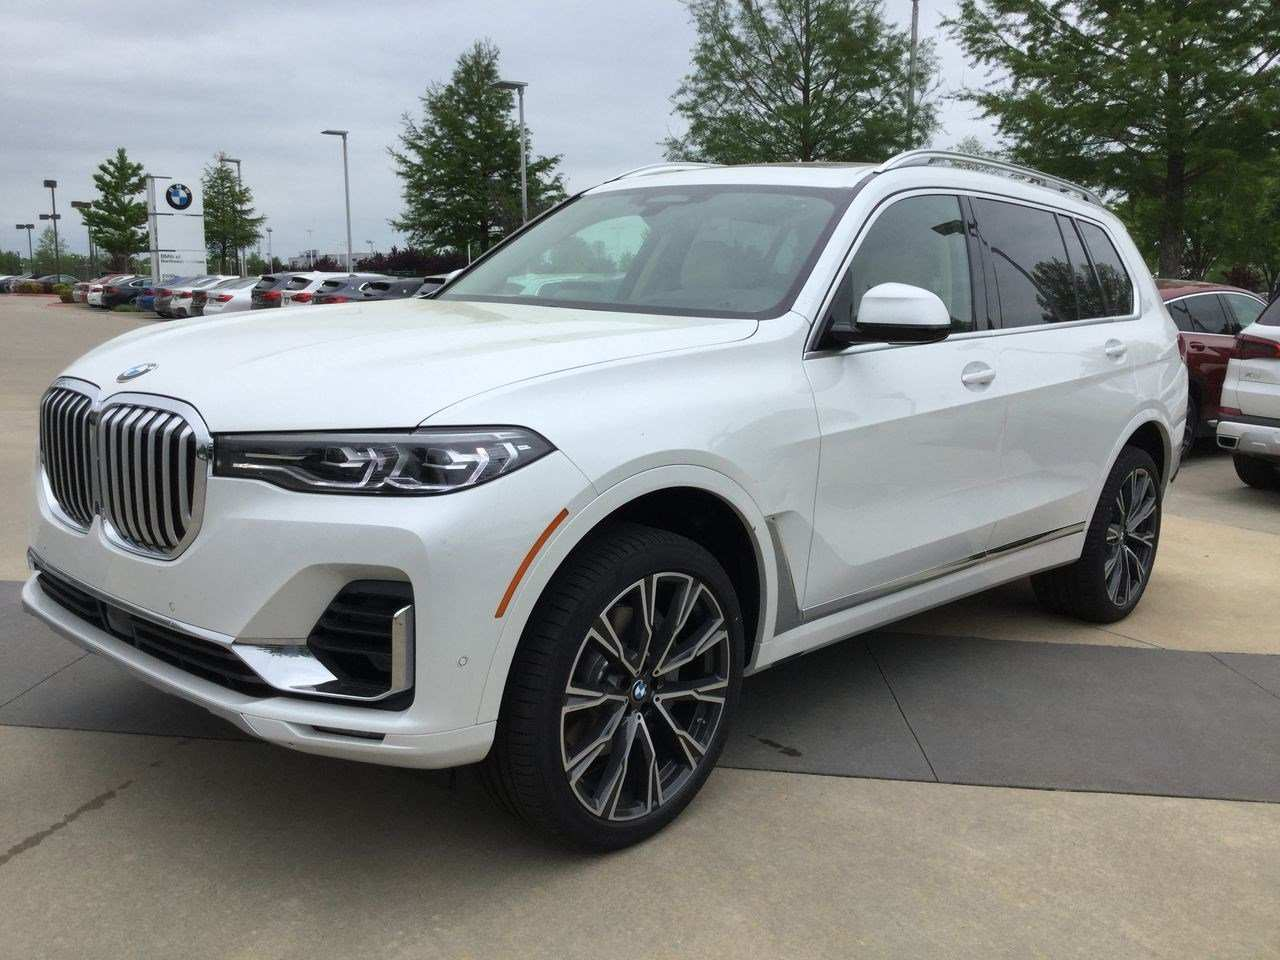 83 Best 2019 BMW X7 Pricing